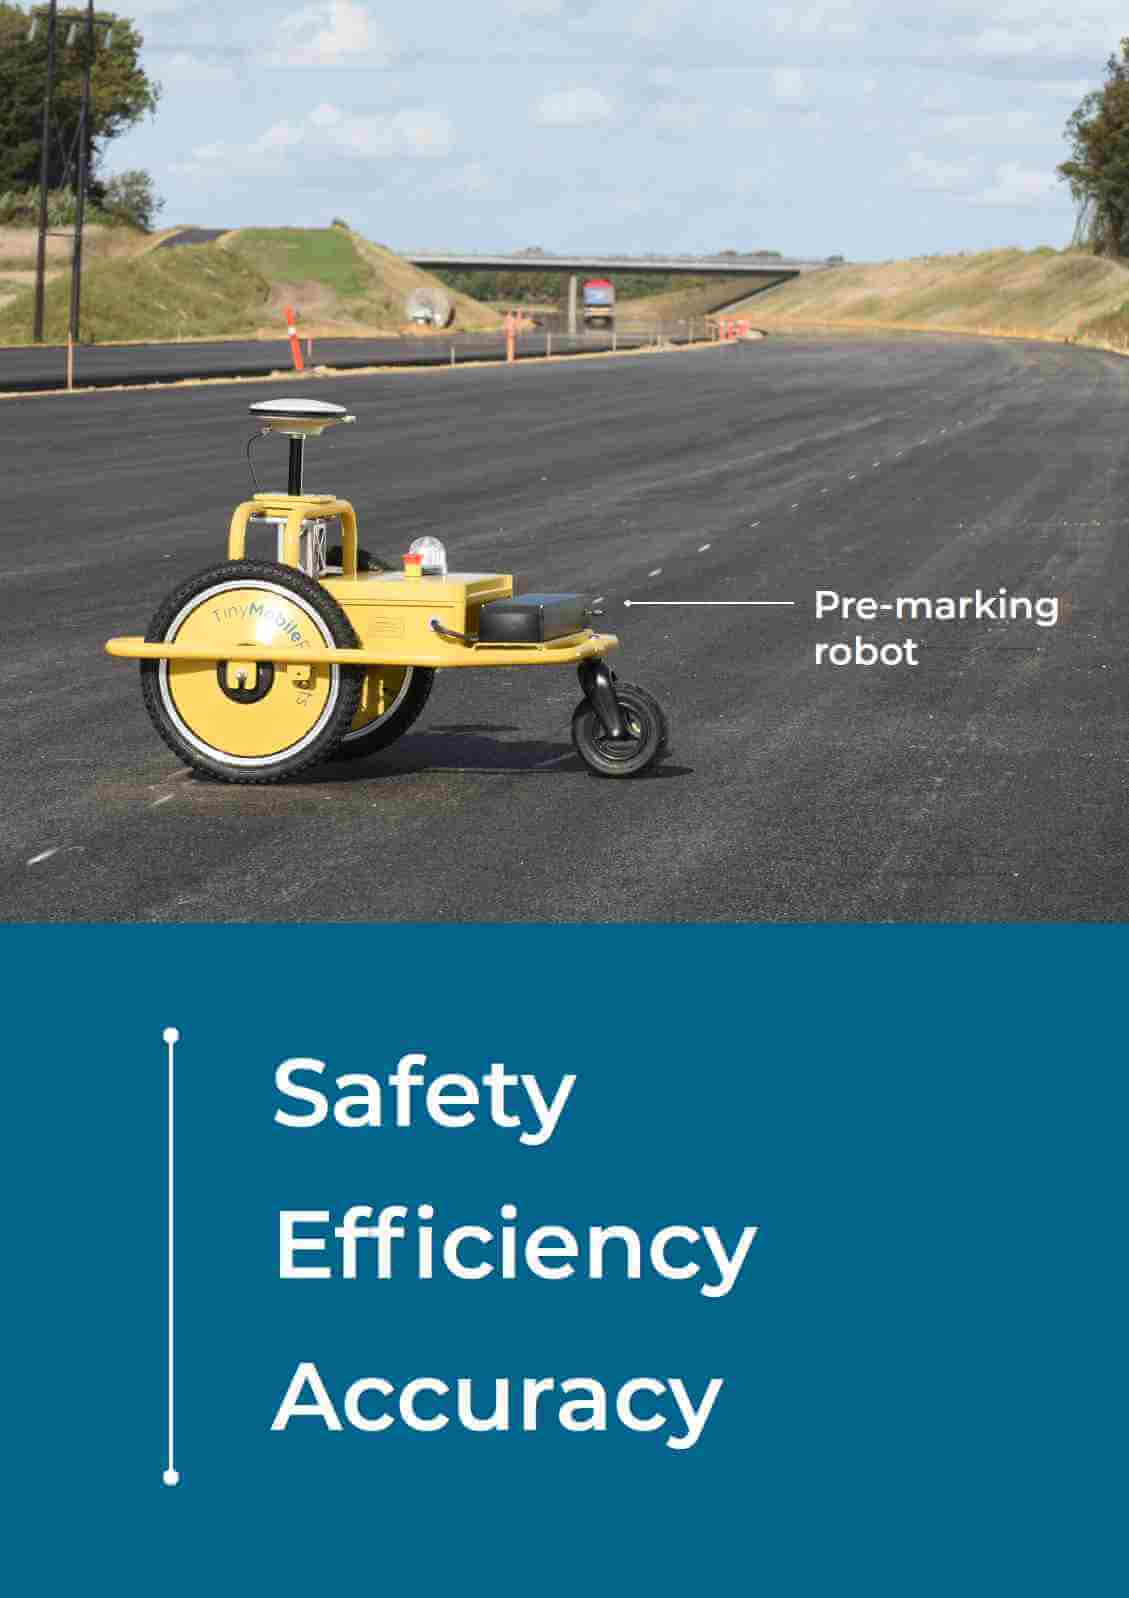 TinyPreMarker robot for road pre-markings and surface works